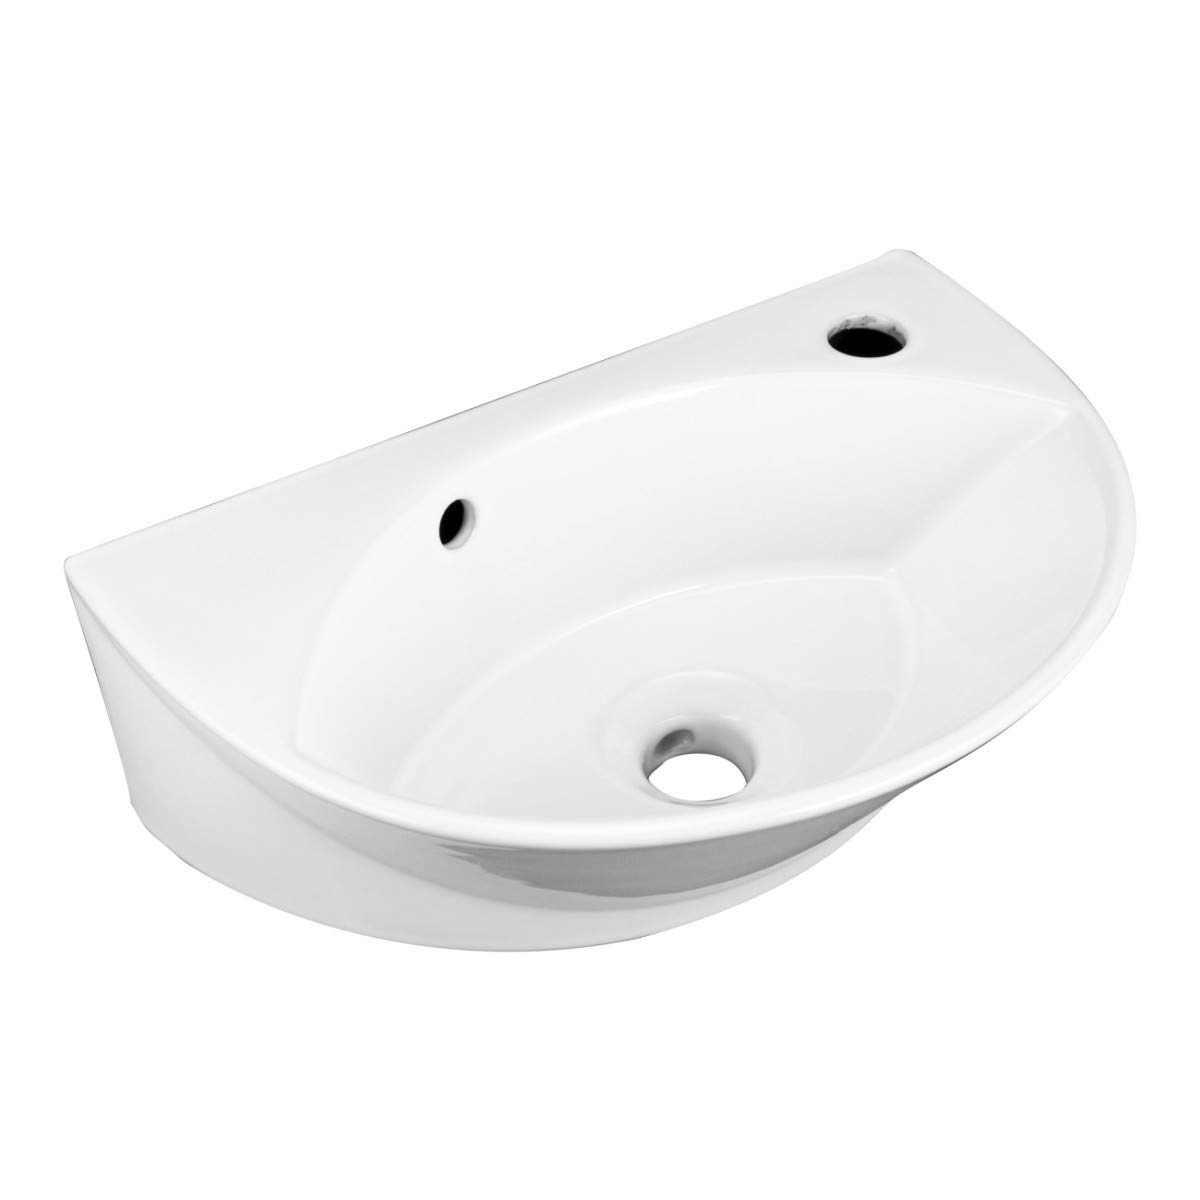 White Small Wall Mount Sink with Single Faucet Hole Overflow Bathroom Sink